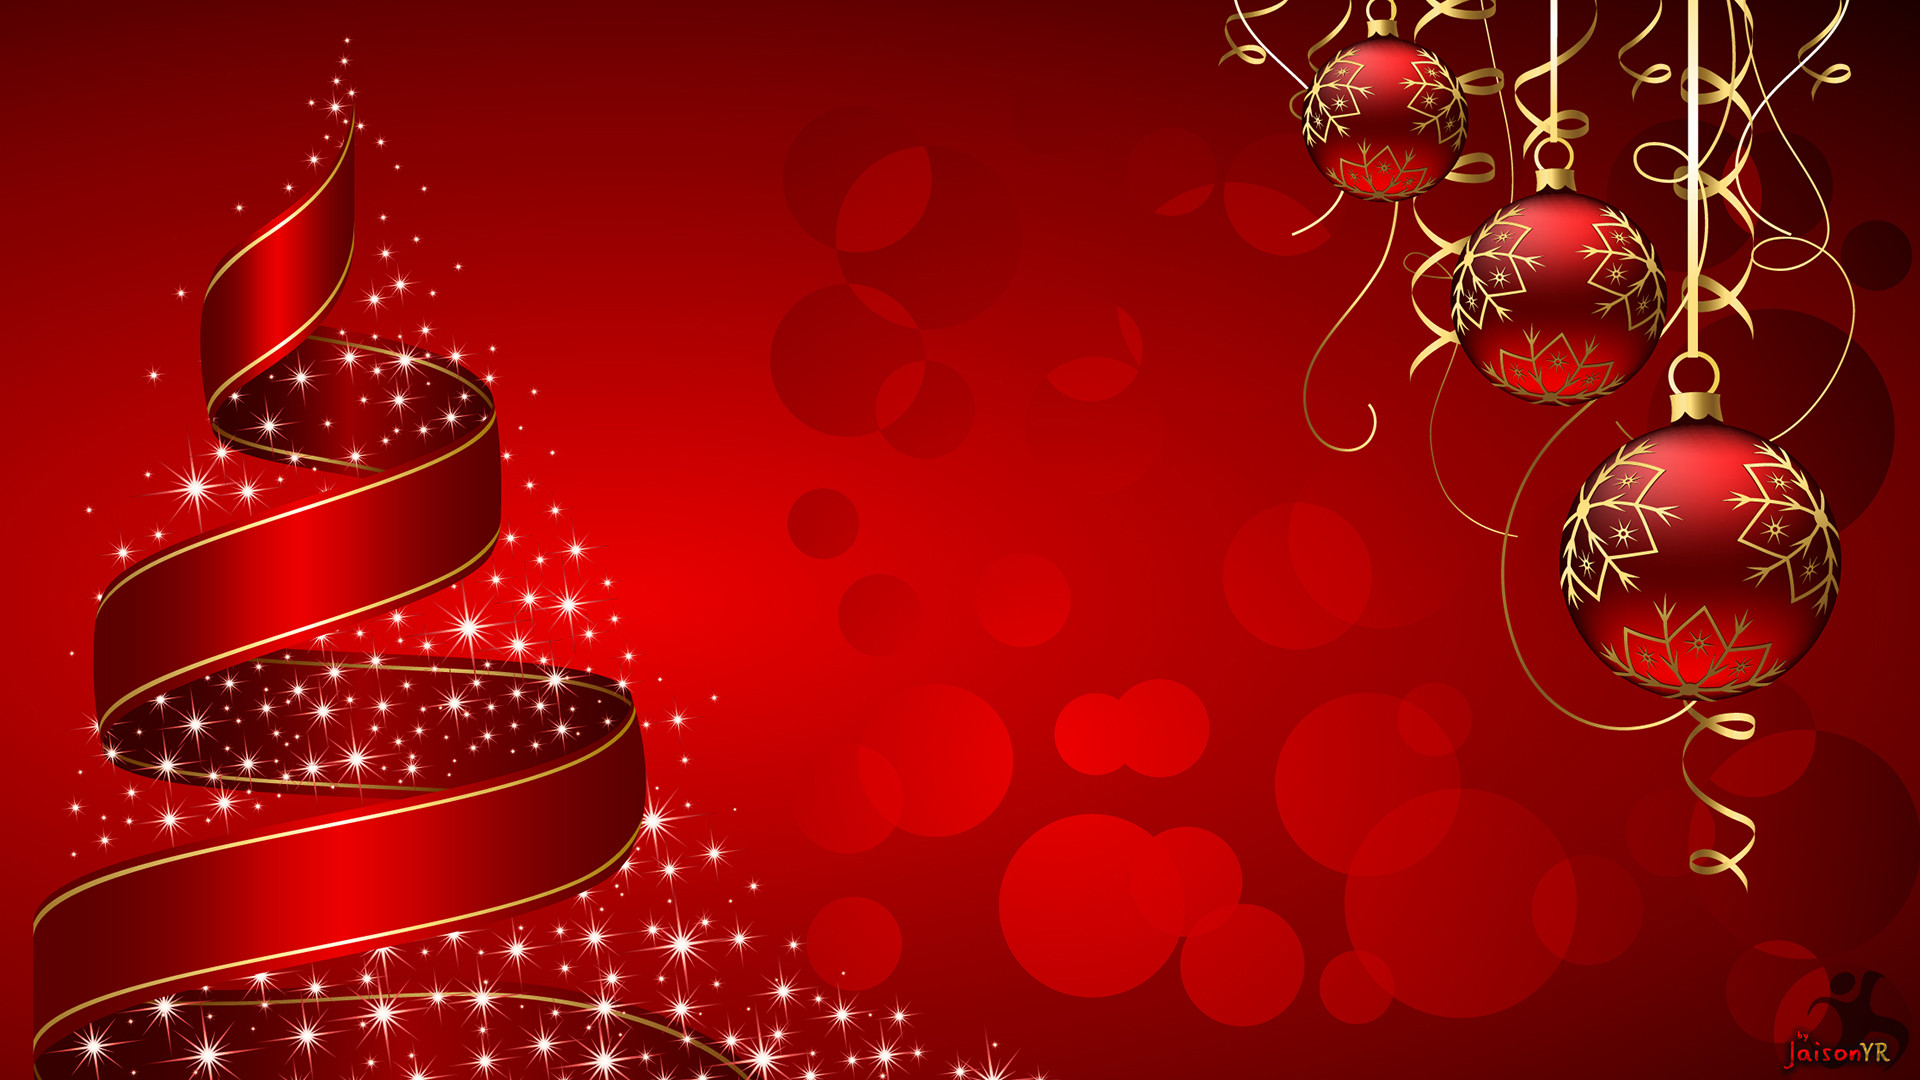 Christmas Background Pictures